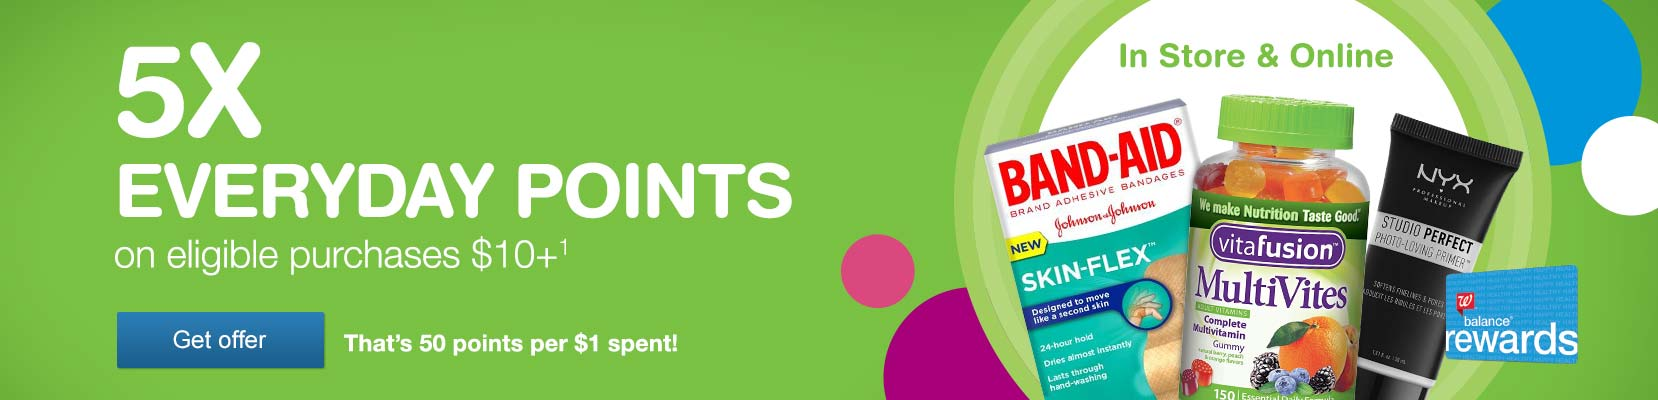 Balance(R) Rewards 5X Everyday Points on eligible purchases $10+.(1) In Store & Online. That's 50 points per $1 spent! Get offer.